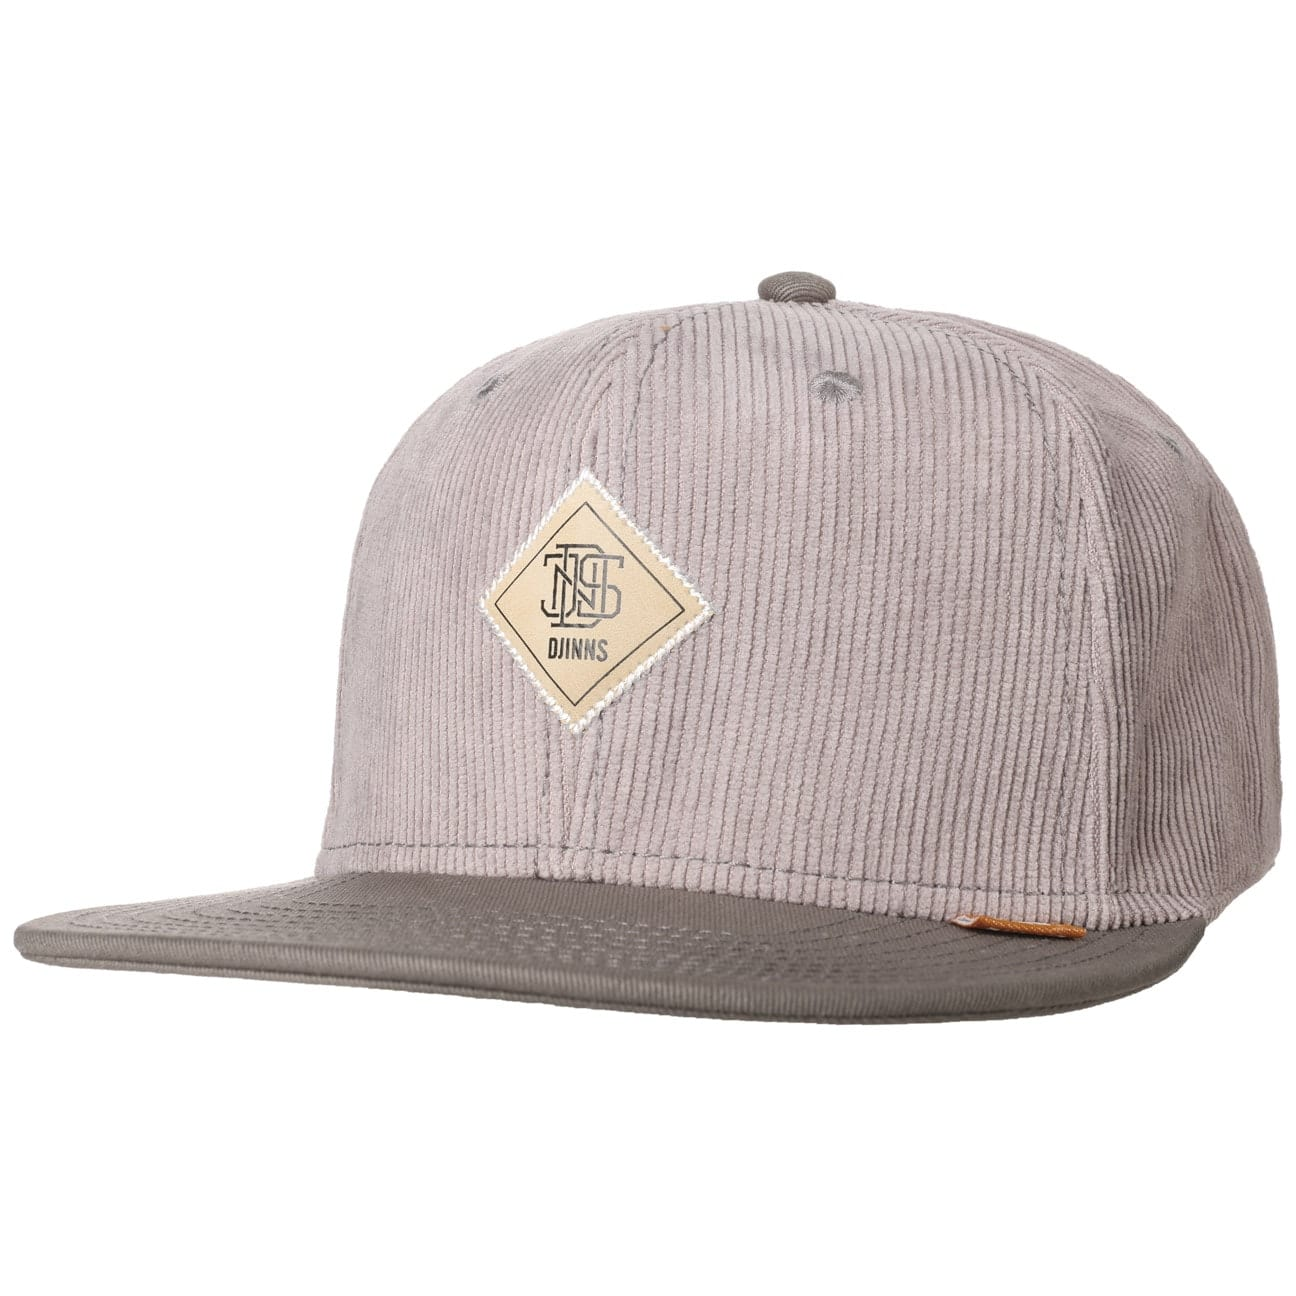 Casquette Snapback 6P Washed Corduroy by Djinns  casquette visière plate